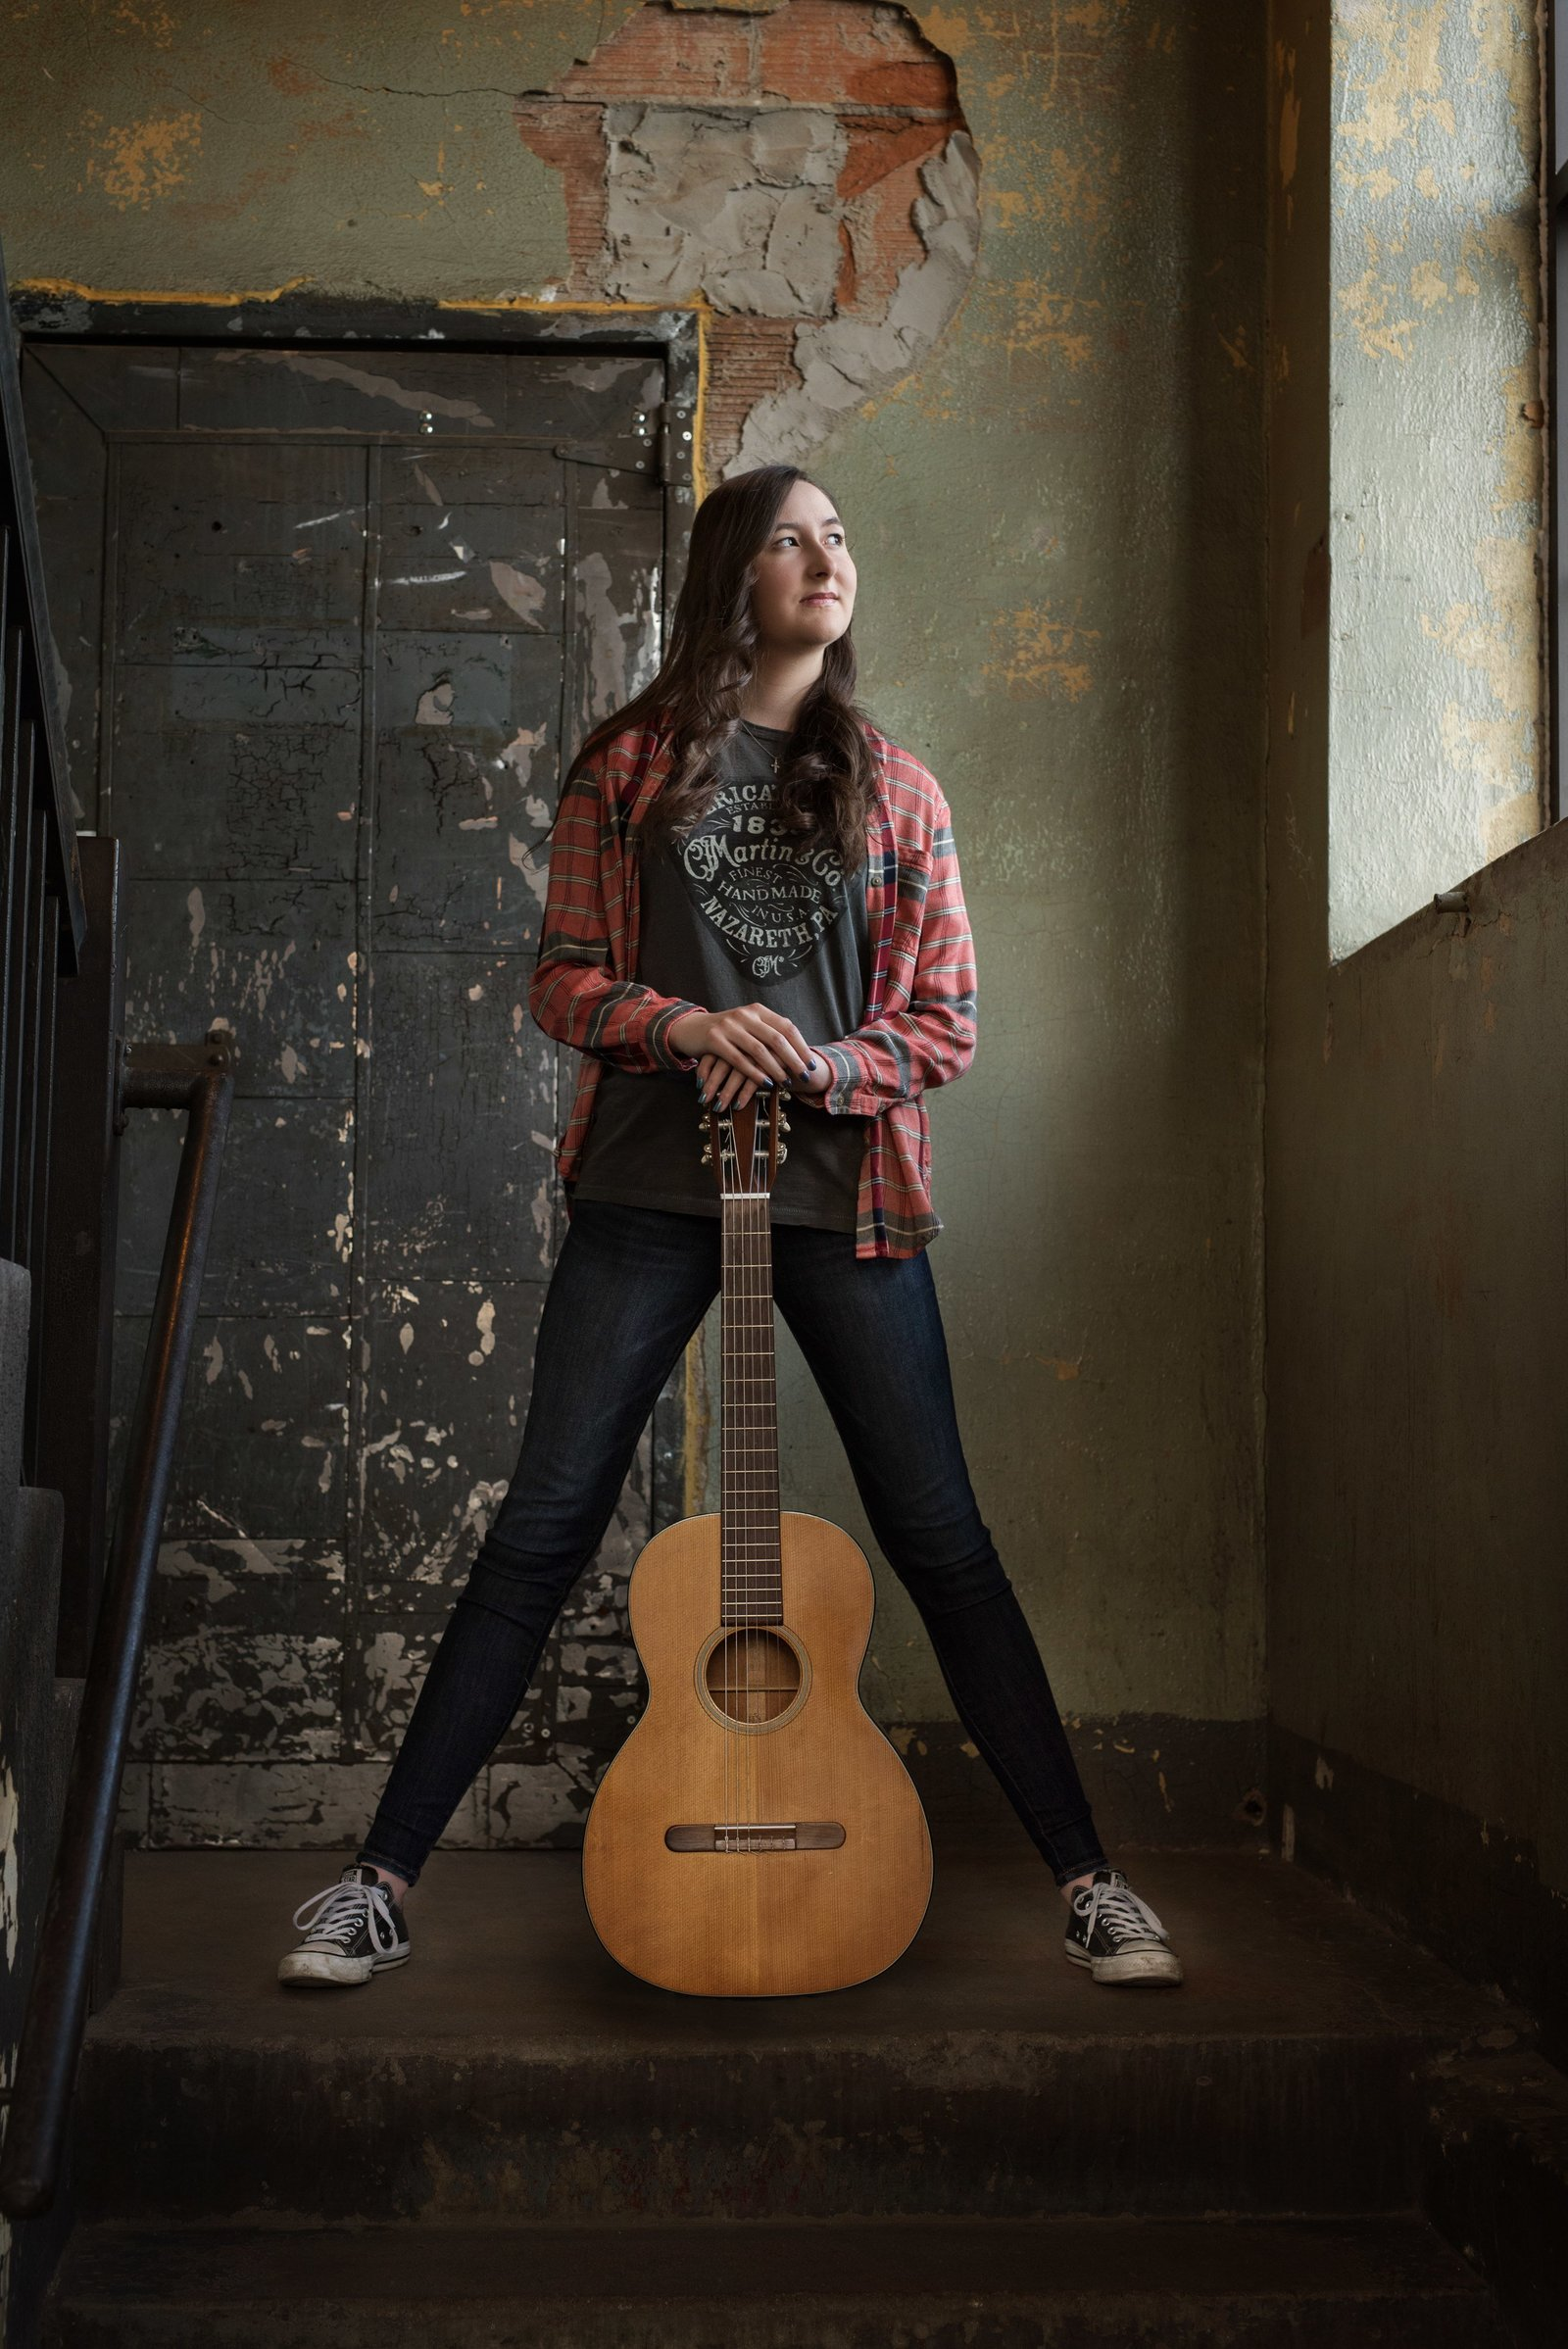 Senior picture of girl in grungy scene with guitar